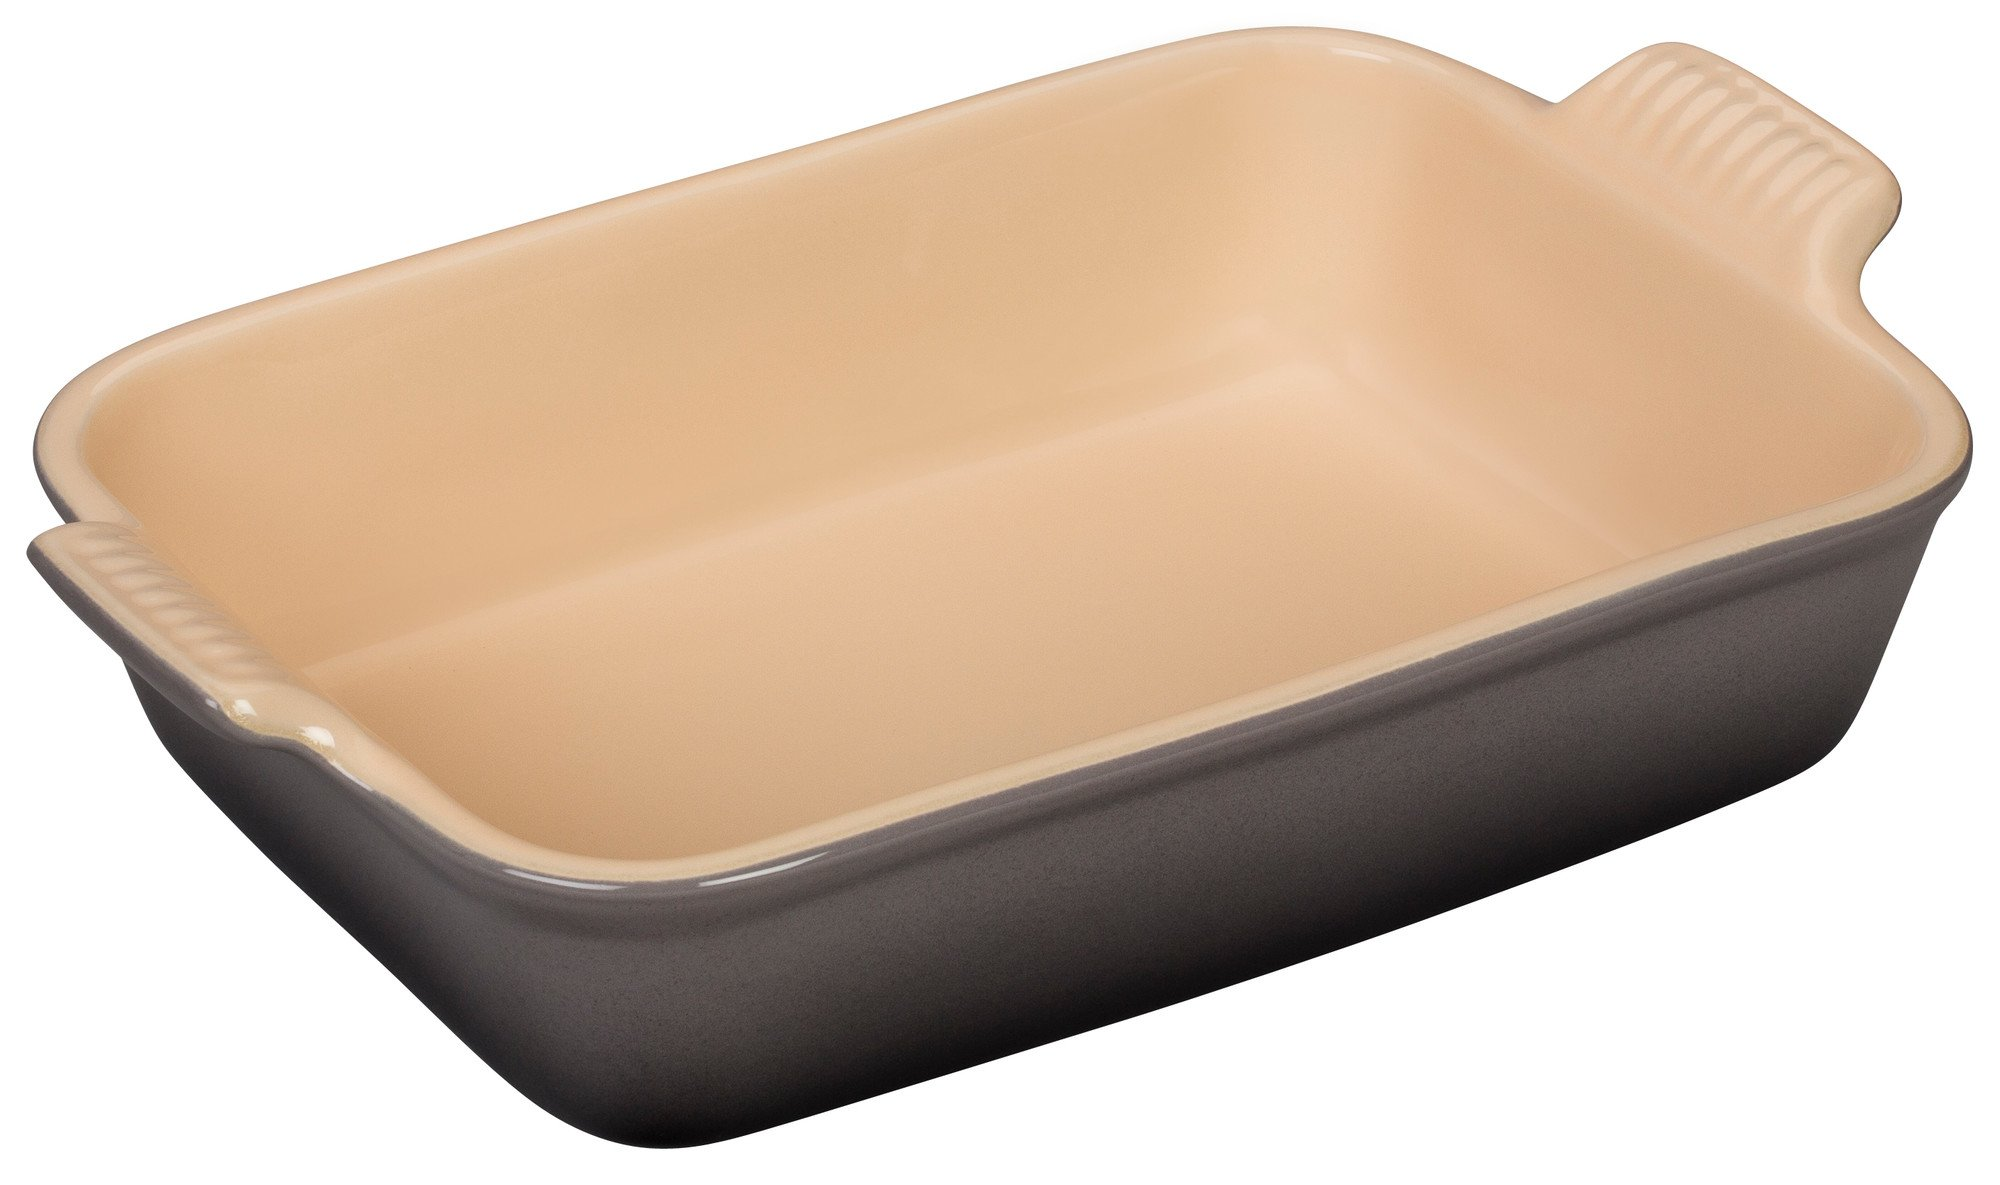 Le Creuset Heritage Stoneware 10-1/2-by-7-Inch Rectangular Dish, Oyster